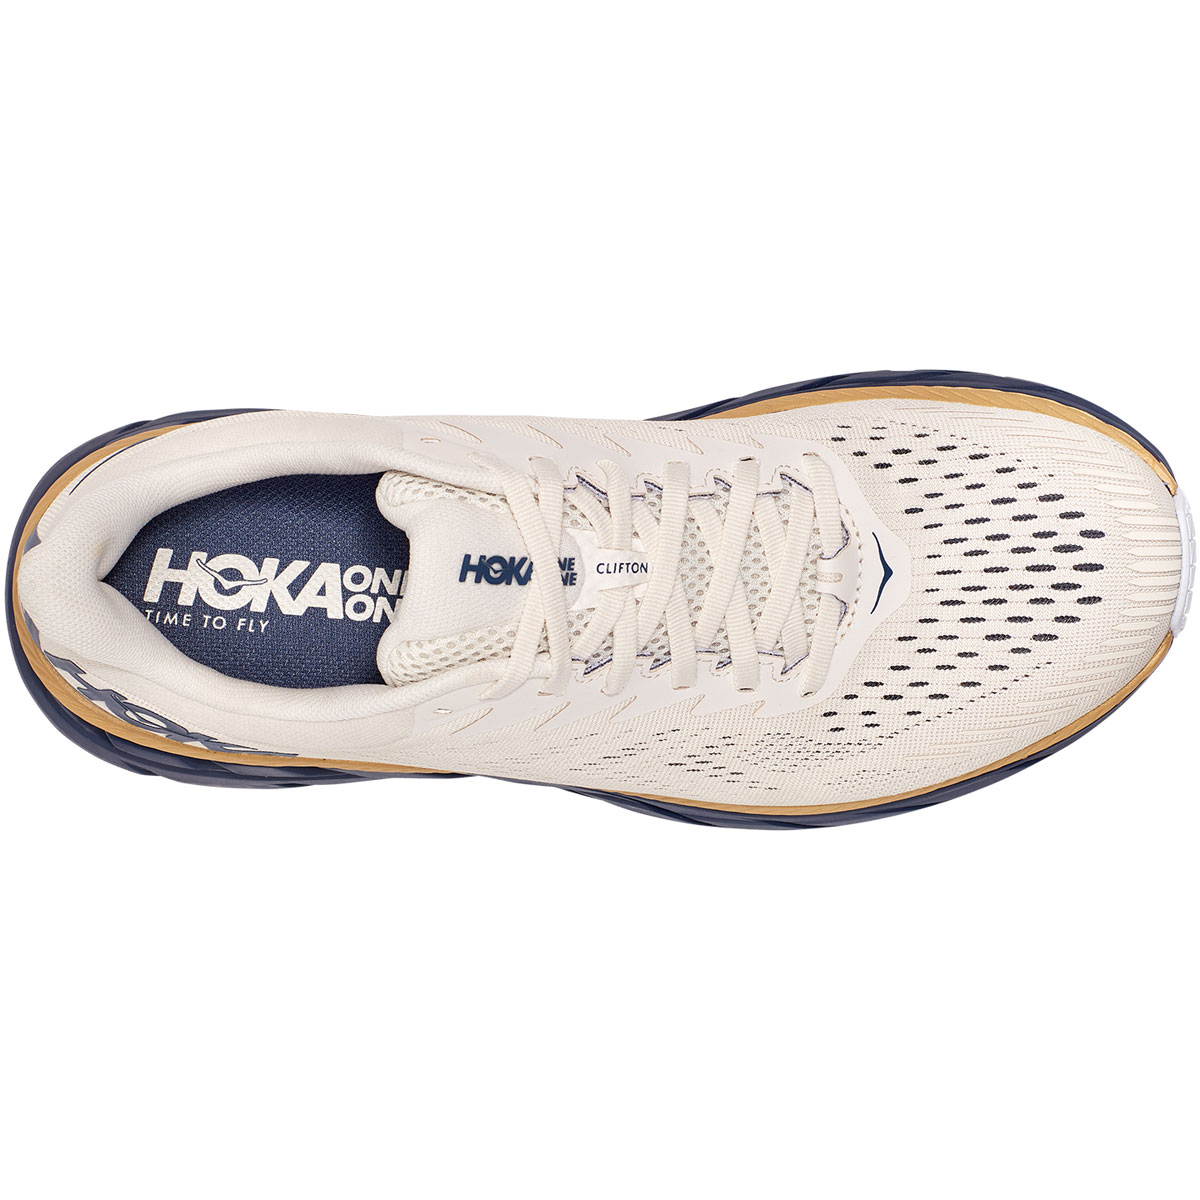 Men's Hoka One One Clifton 7 Running Shoe - Color: Tofu/Vintage - Size: 7 - Width: Regular, Tofu/Vintage, large, image 2